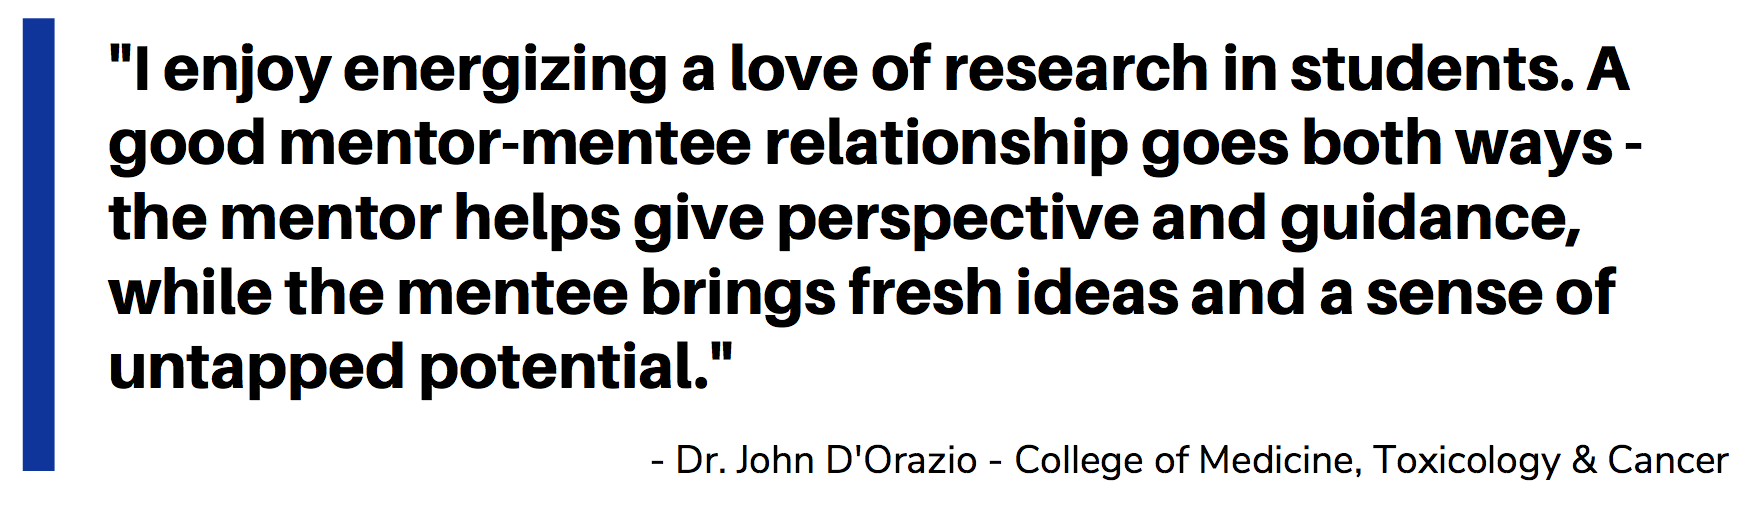 I enjoy energizing a love of research in students. A good mentor-mentee relationship goes both ways - the mentor helps give perspective and guidance, while the mentee brings fresh ideas and a sense of untapped potential. Dr. John D'Orazio